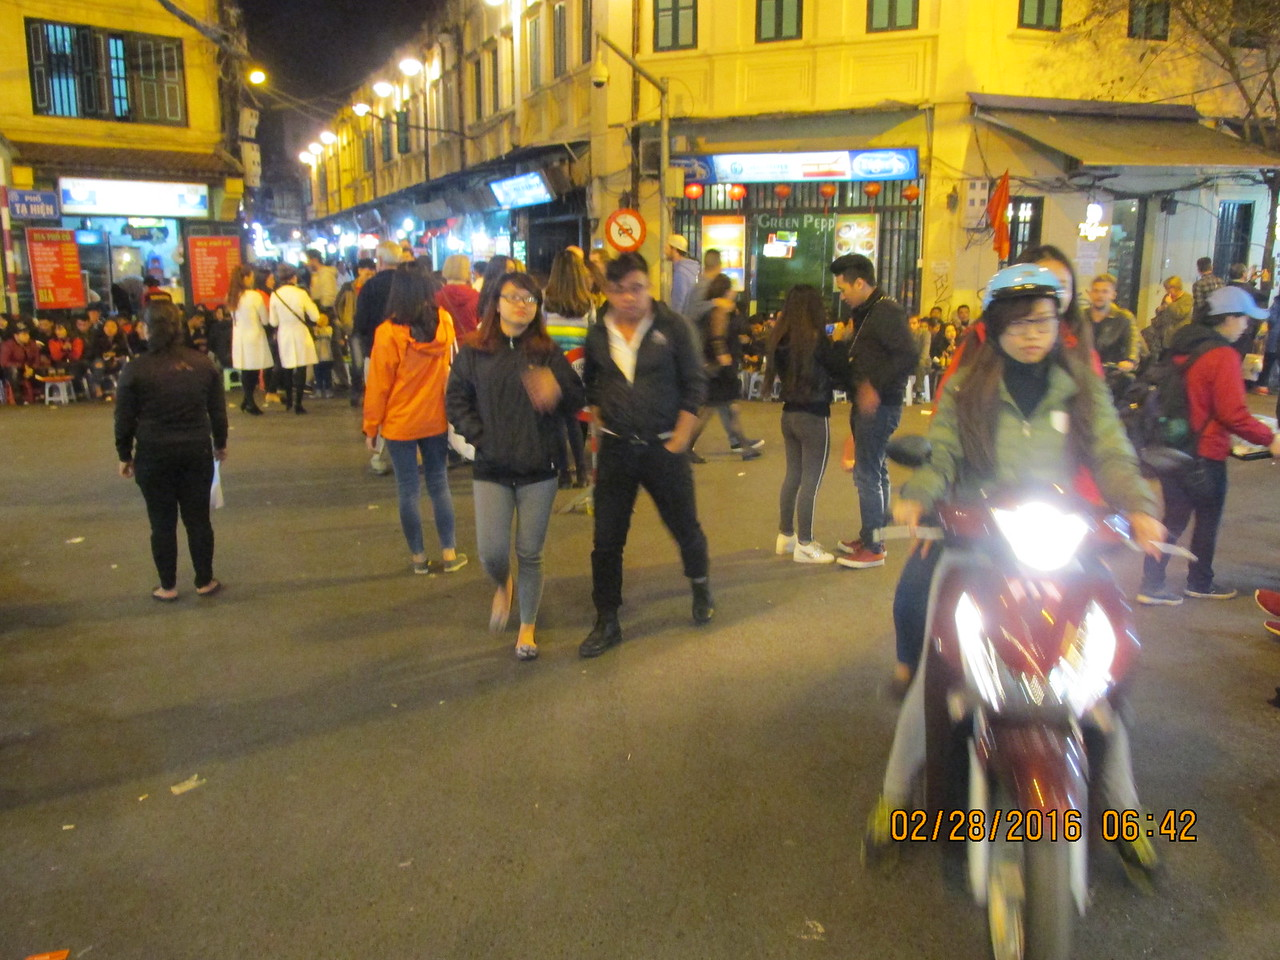 0074 - Streets of the Old Quarter - Hanoi Vietnam - Date Correct but Time on Pic is Wrong